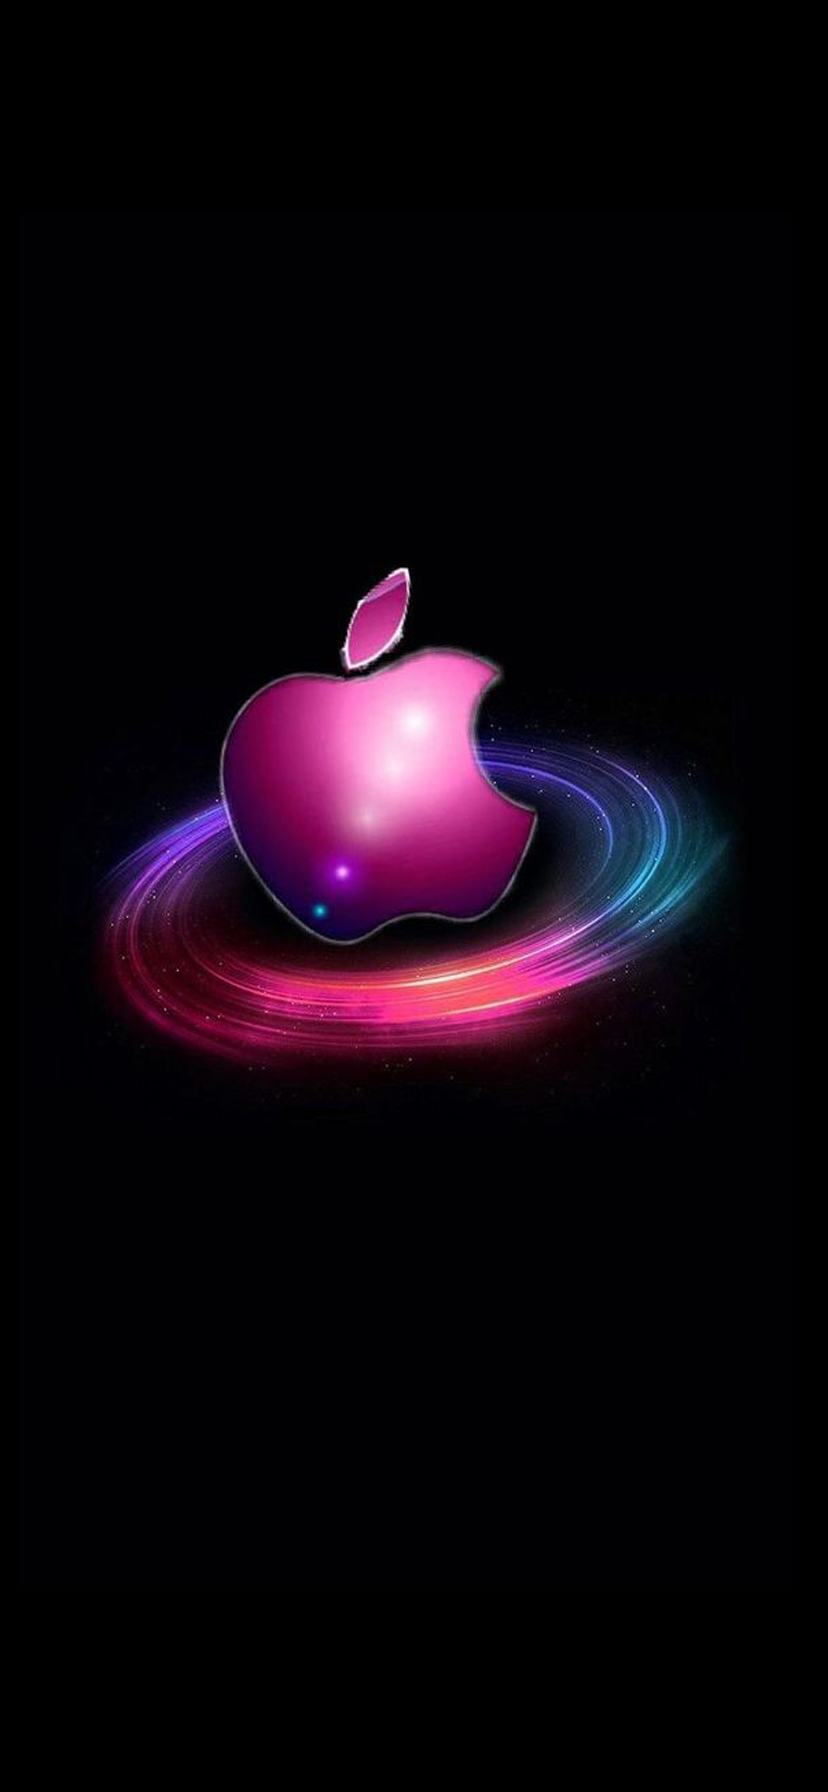 View Iphone 11 Wallpaper Size Inches Pictures